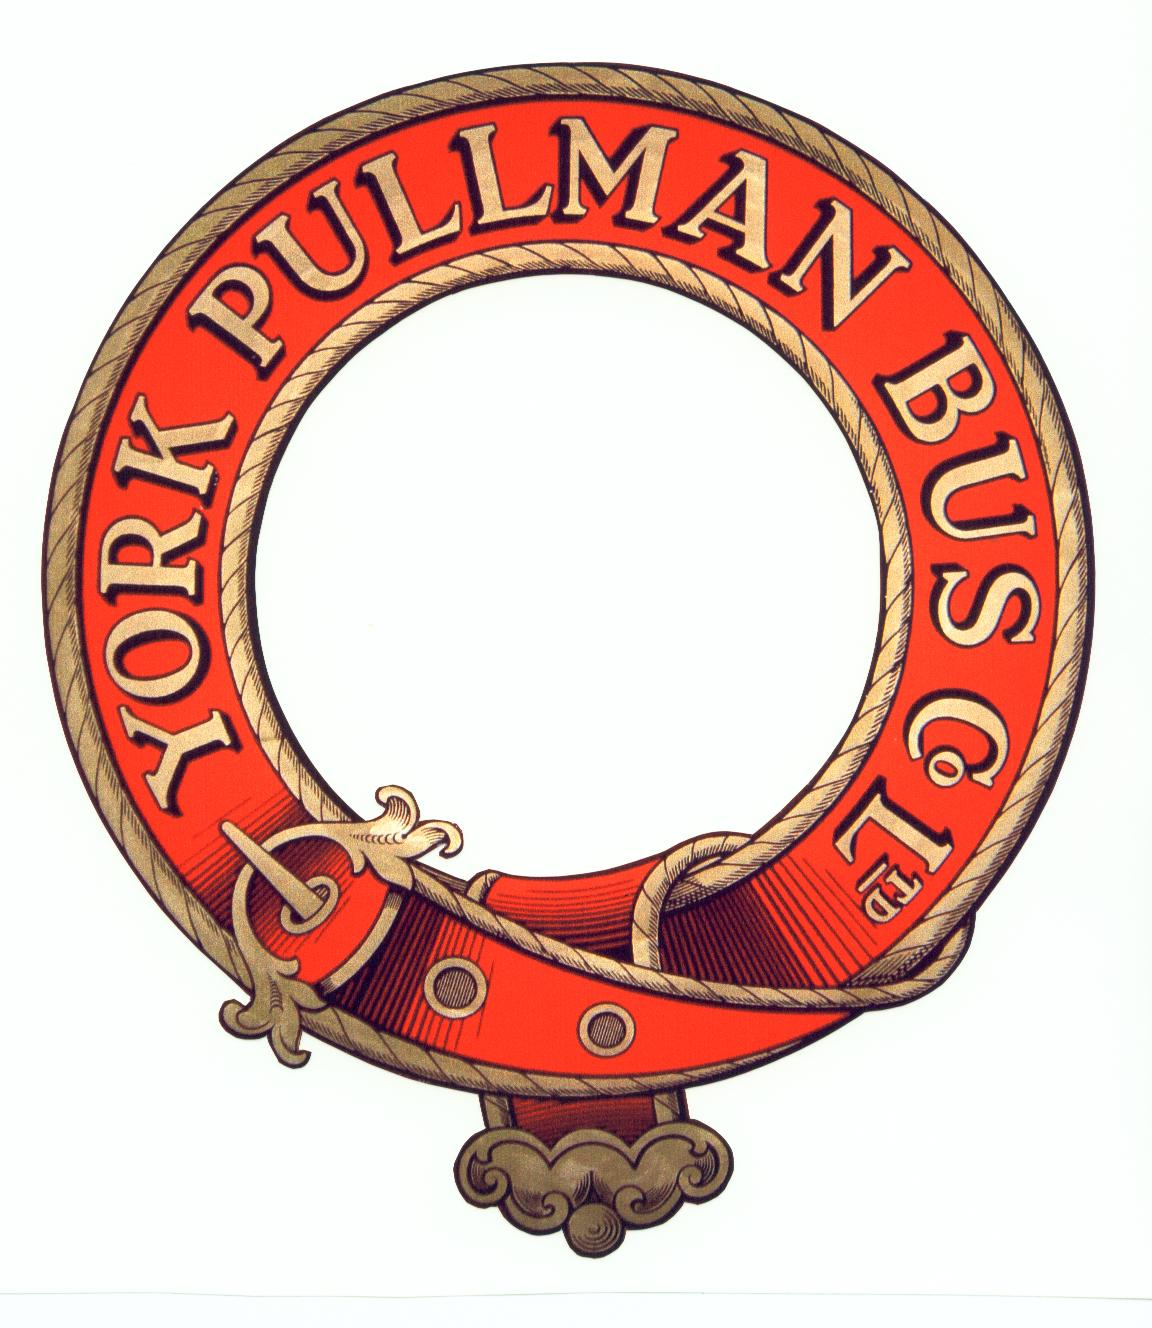 We're part of the York Pullman Group!